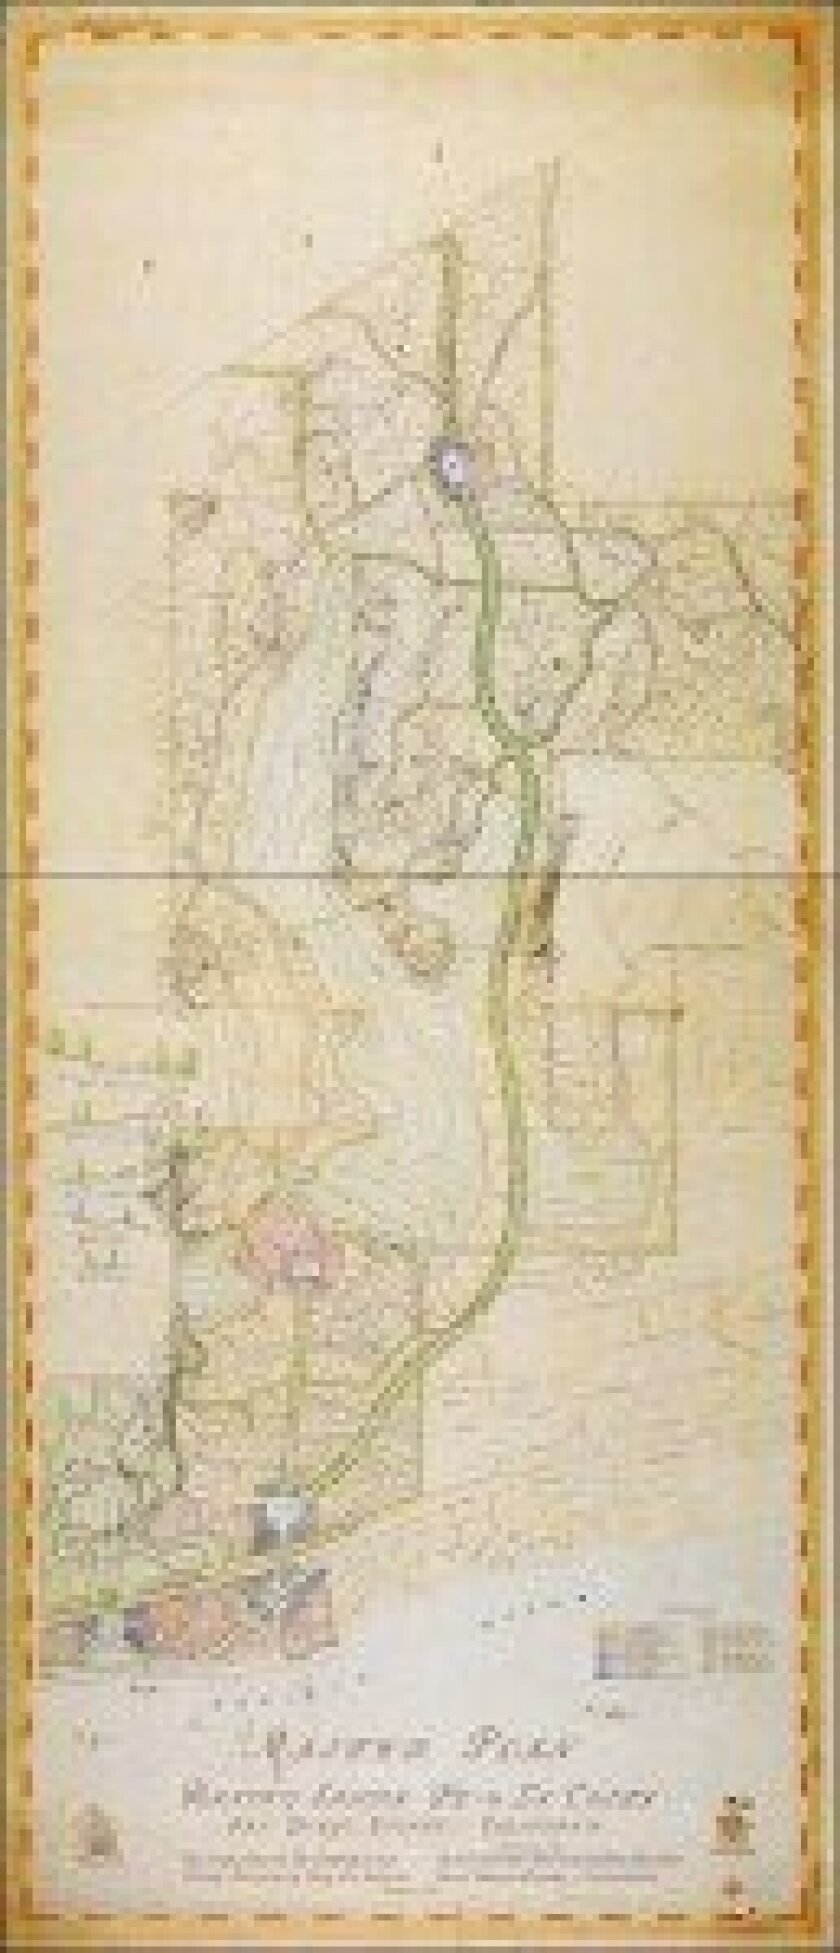 A special event featuring the original 1929 Rancho Santa Fe Master Plan map will be held on Thursday, Feb. 28, at the Rancho Santa Fe Golf Club from 5:30-7:30 p.m.